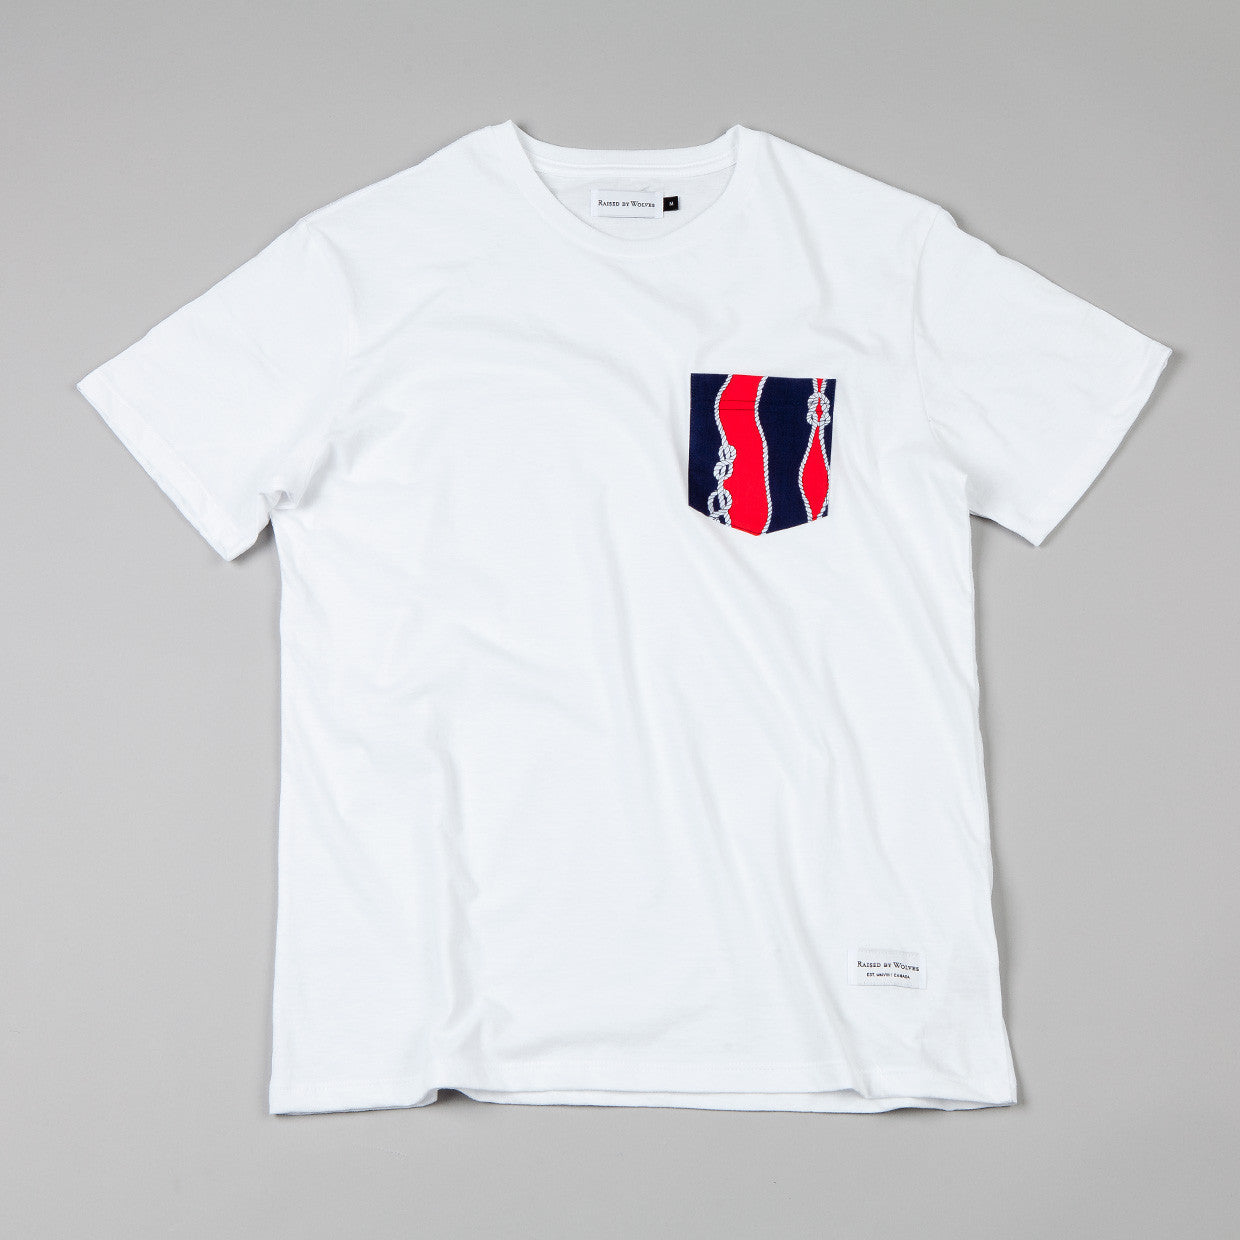 Raised By Wolves Sailor's Knot Pocket T-shirt White